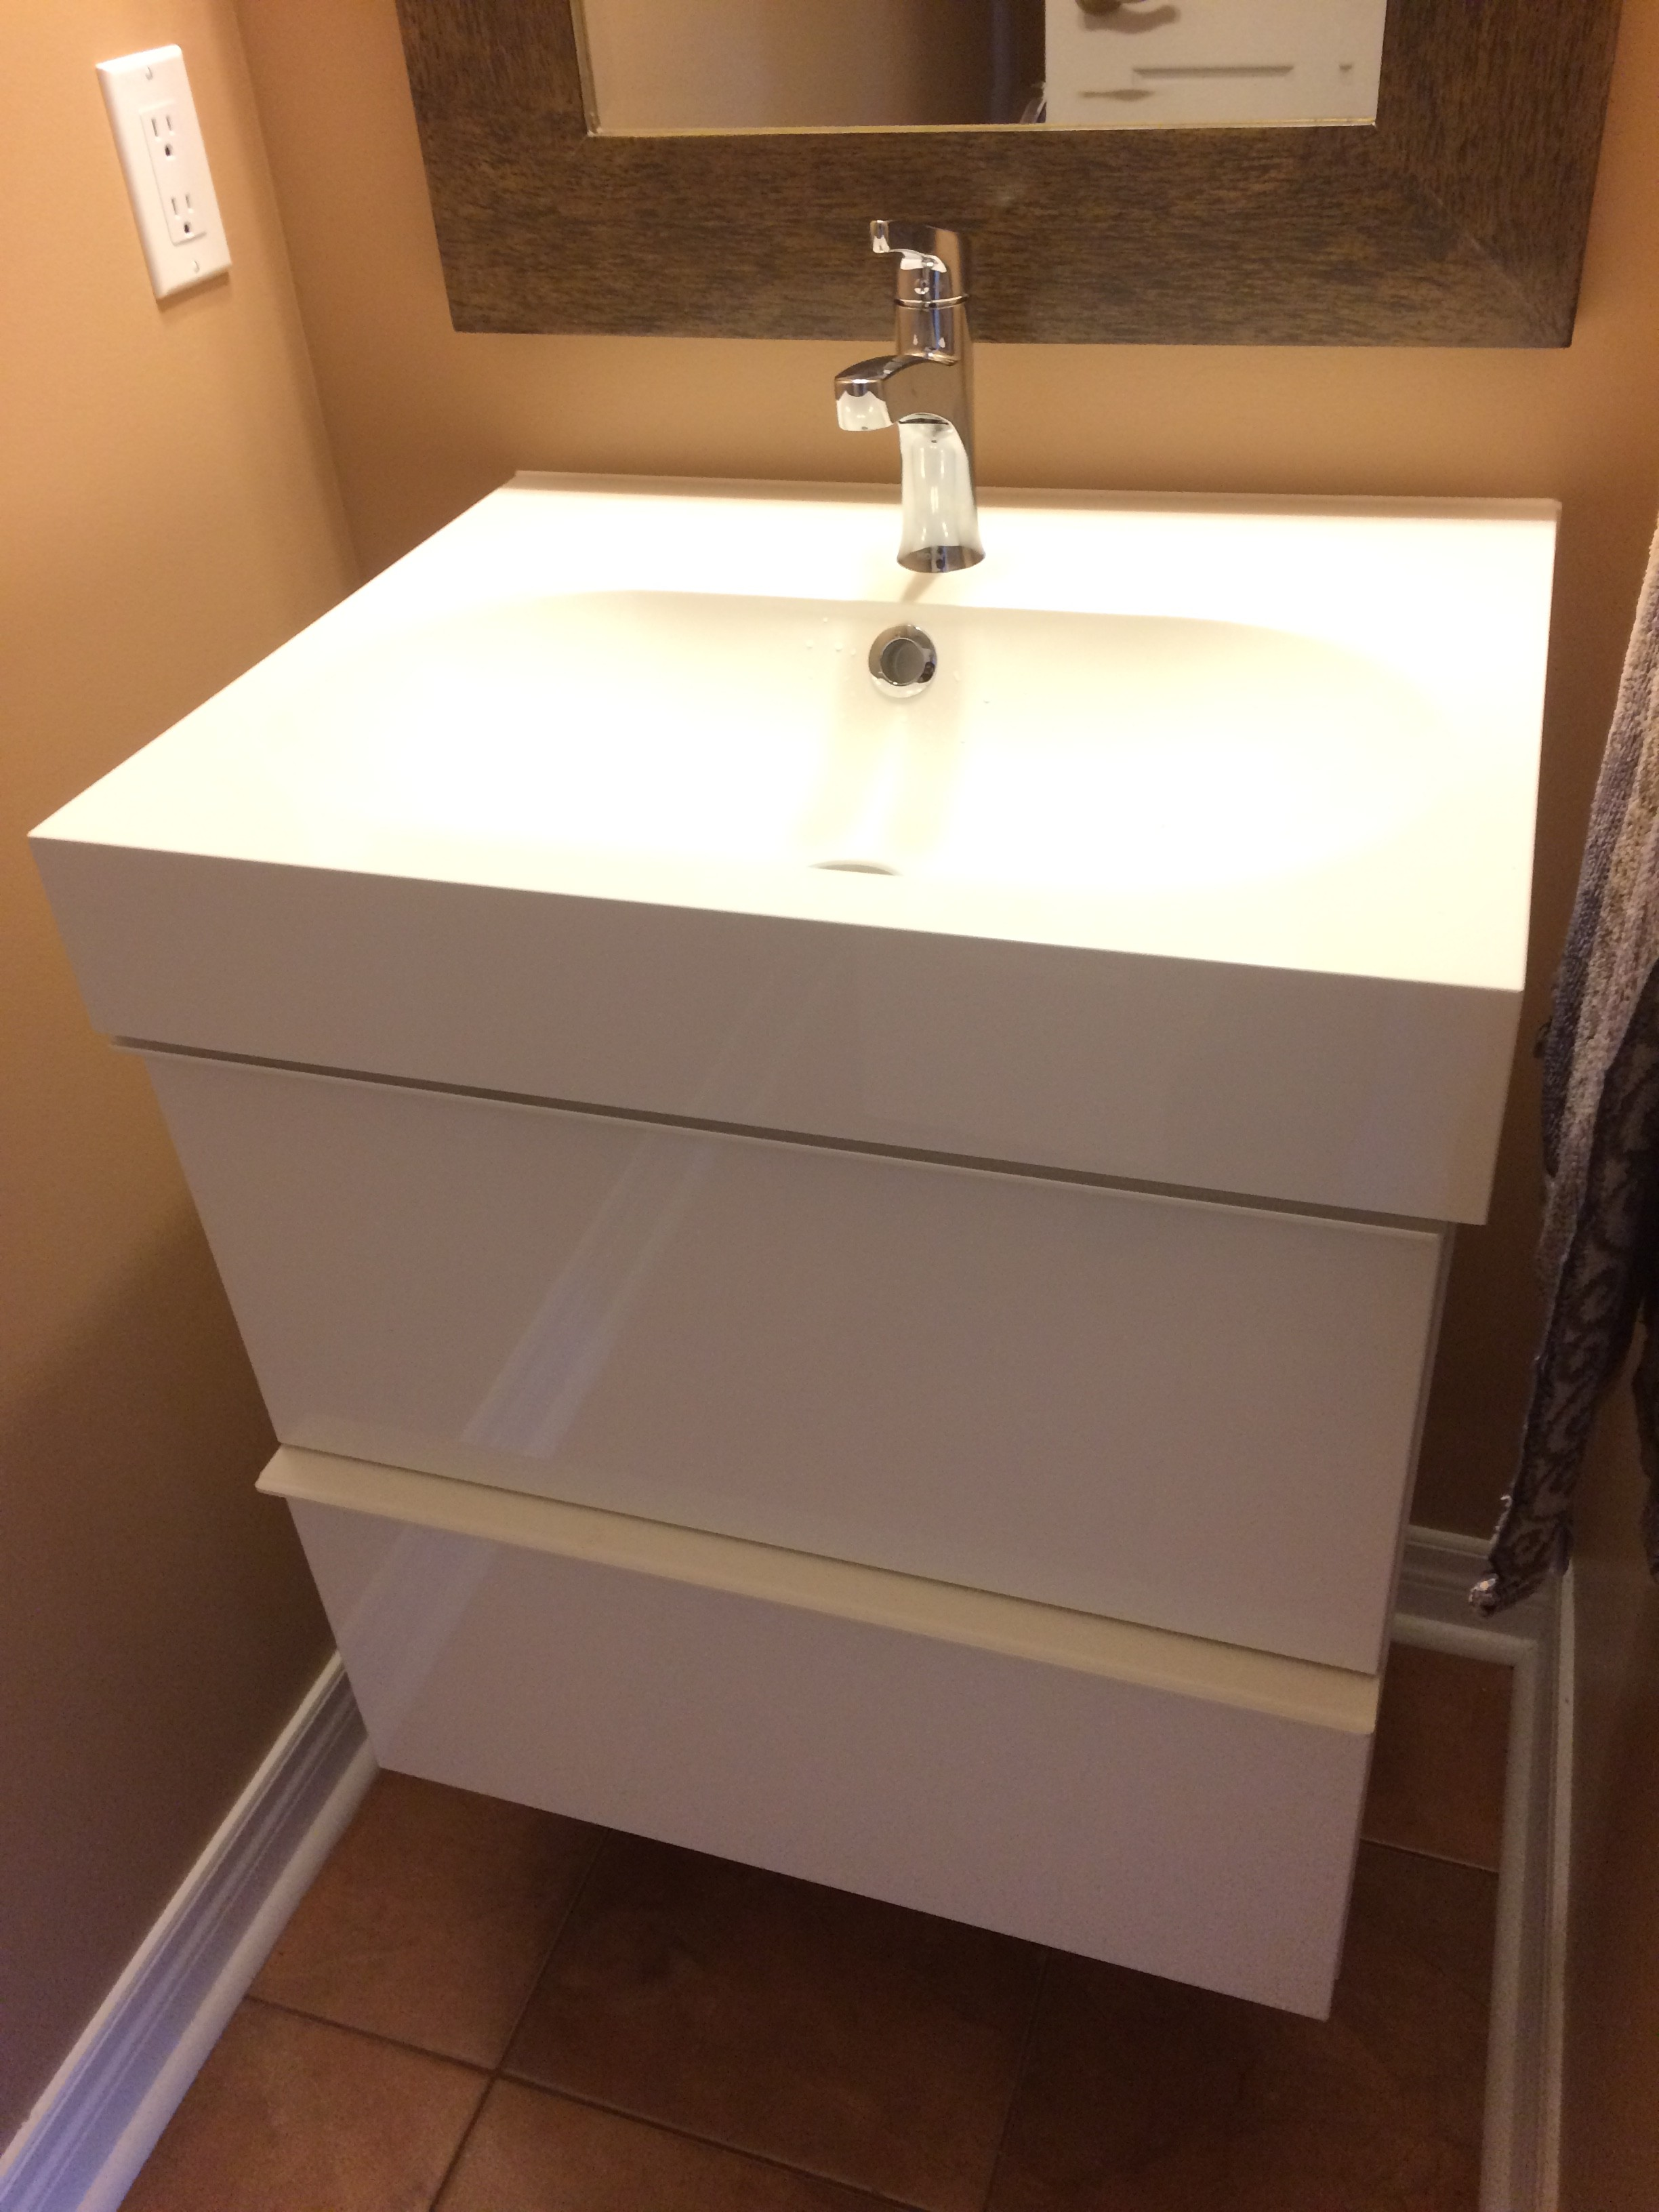 IKEA floating vanity  New Vanity  One possible option   IKEA   Fixitgary com   Fixitgary com. Installing Bathroom Vanity. Home Design Ideas